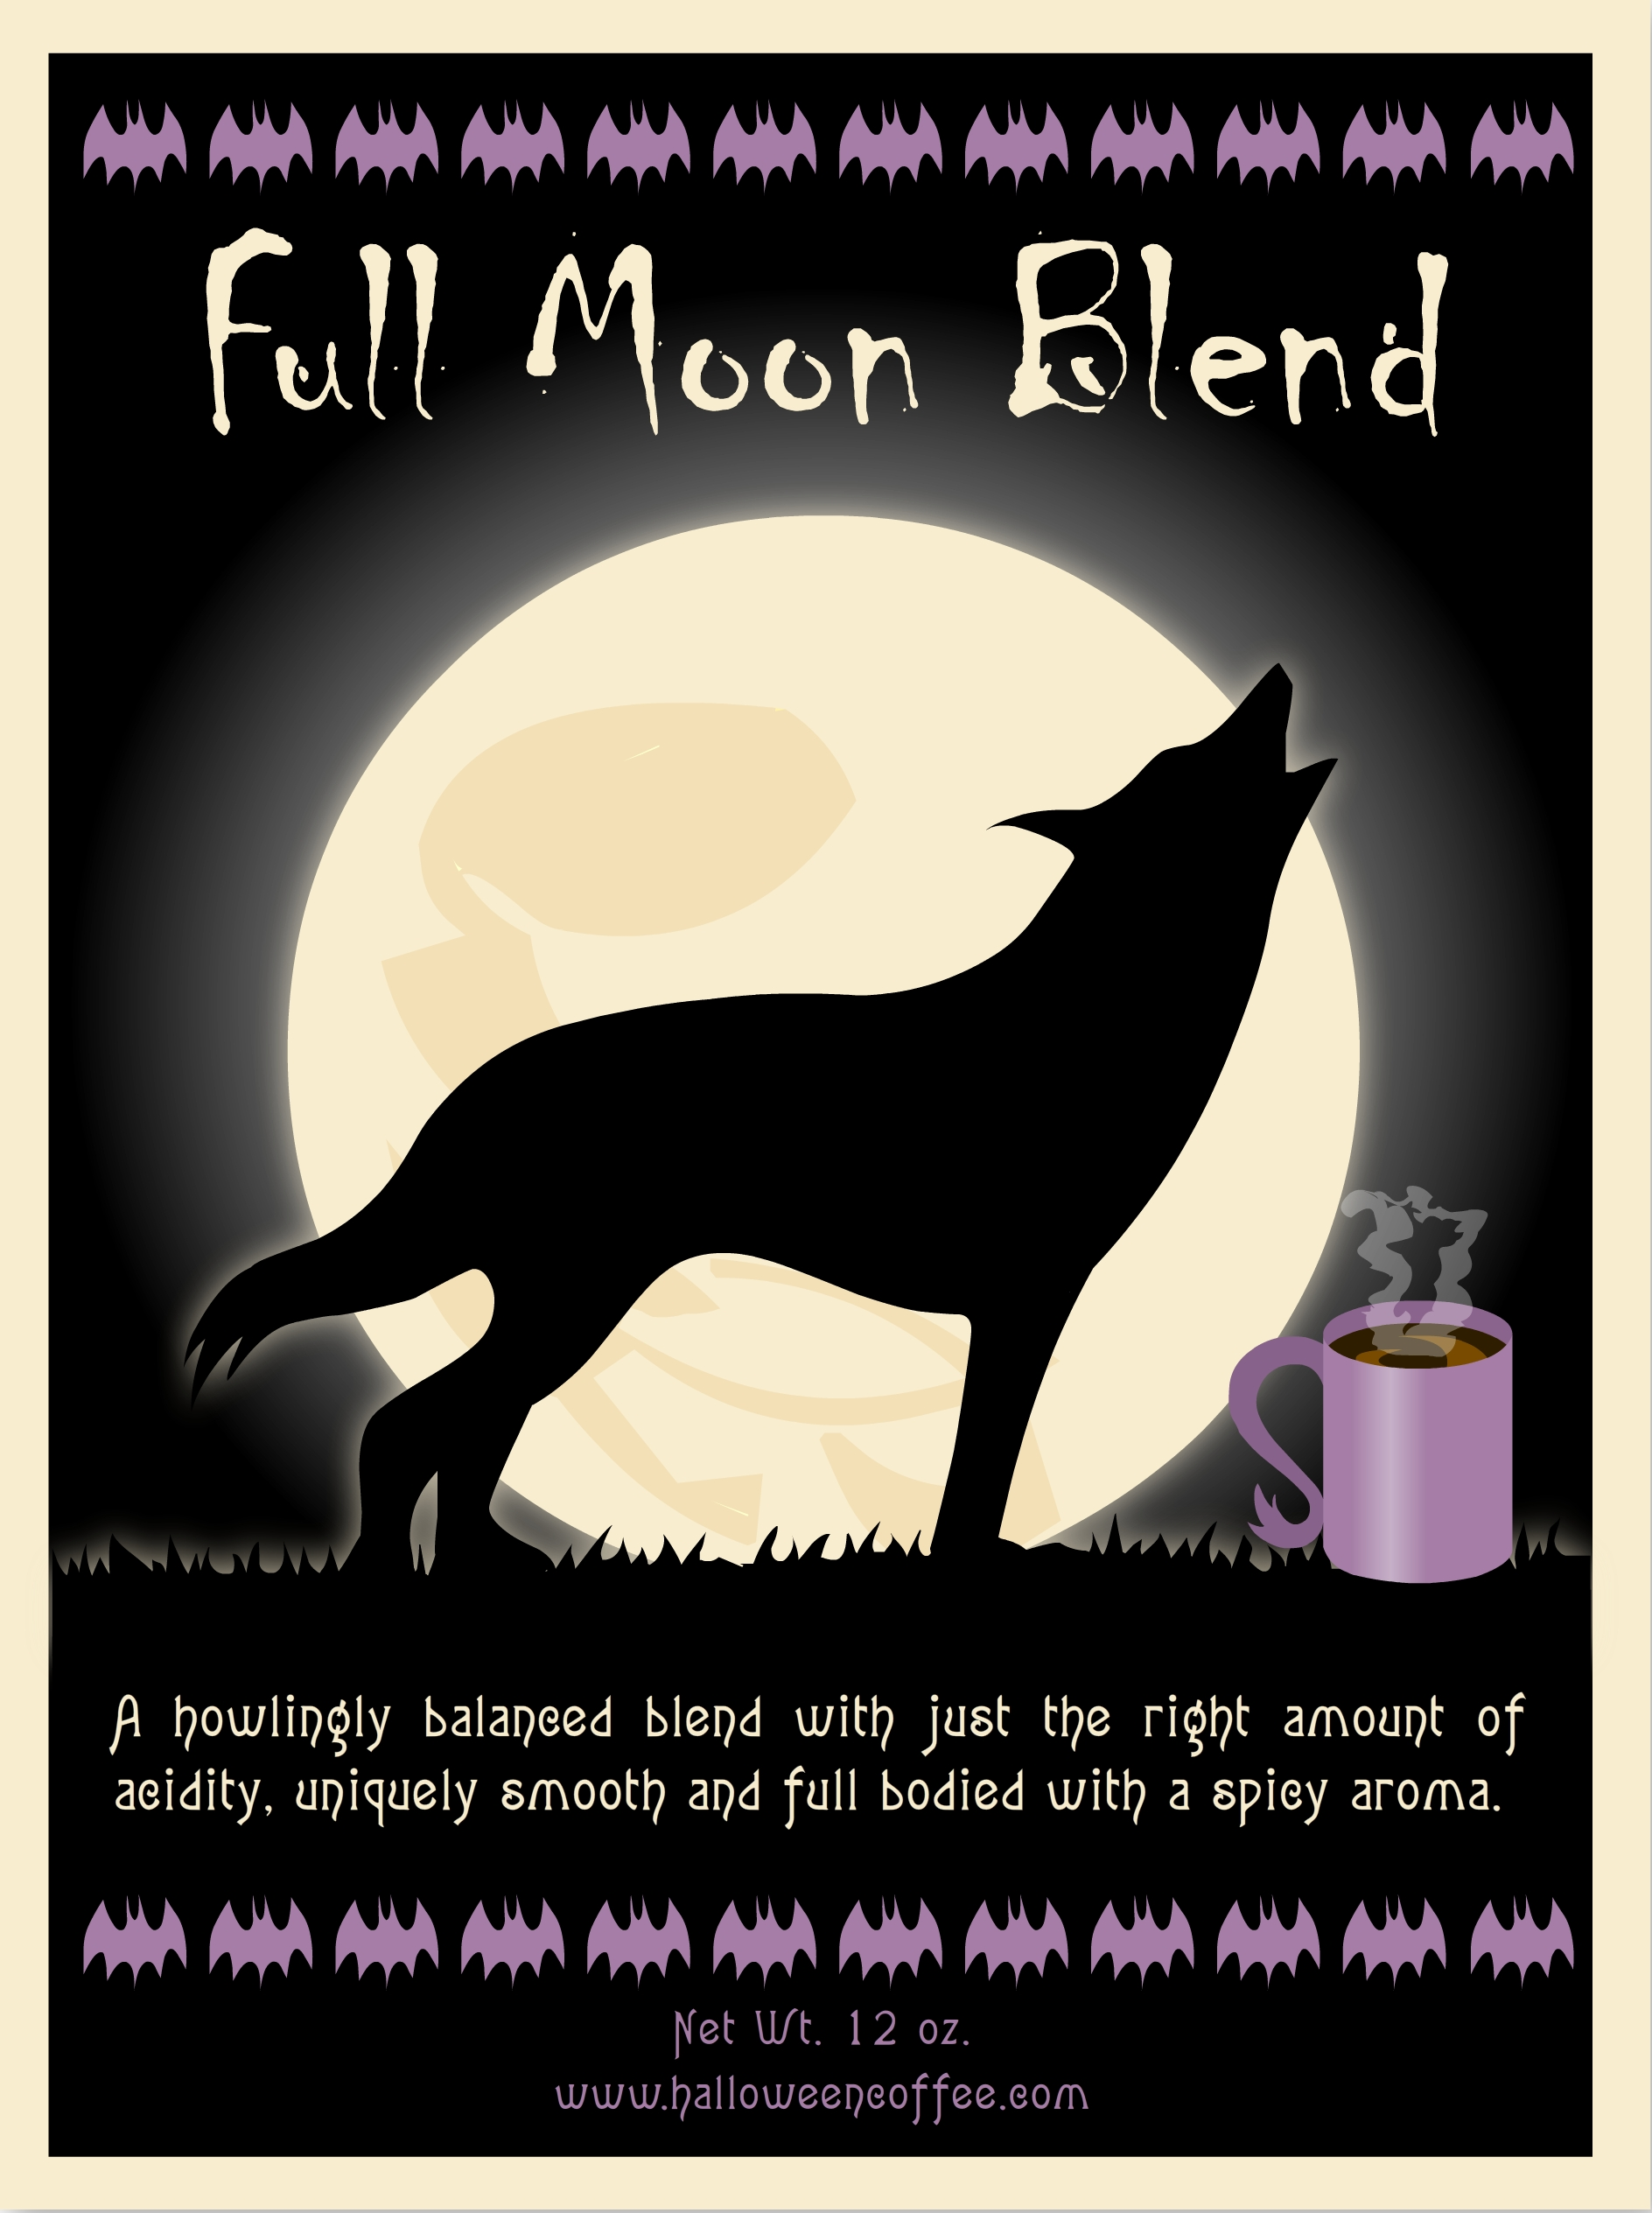 FULL MOON BLEND COFFEE LABEL